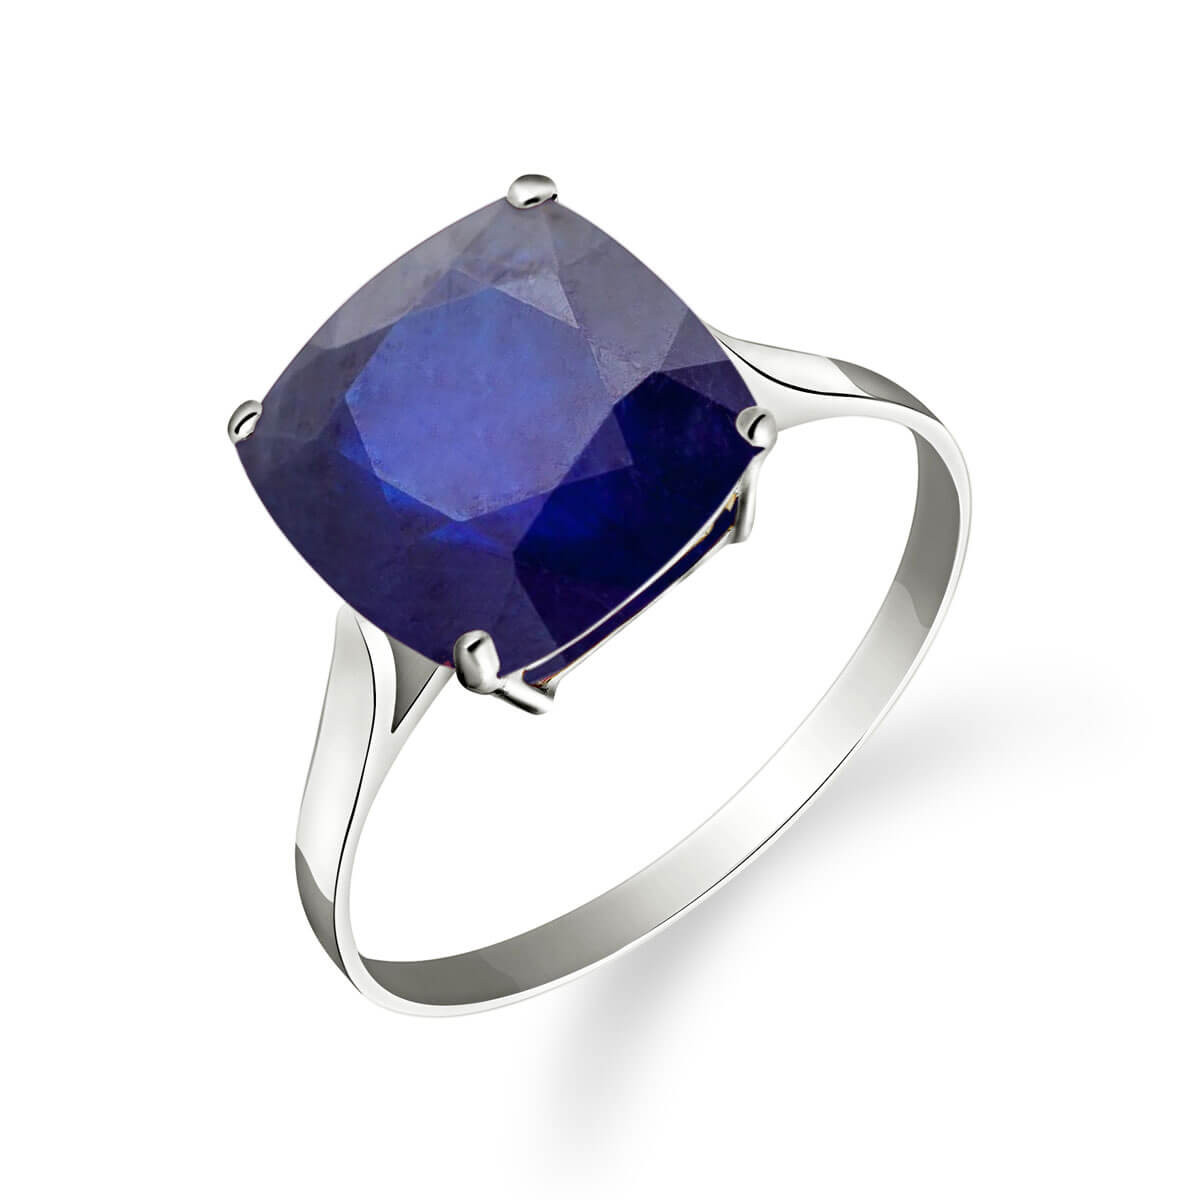 Sapphire Rococo Ring 4.83 ct in 9ct White Gold